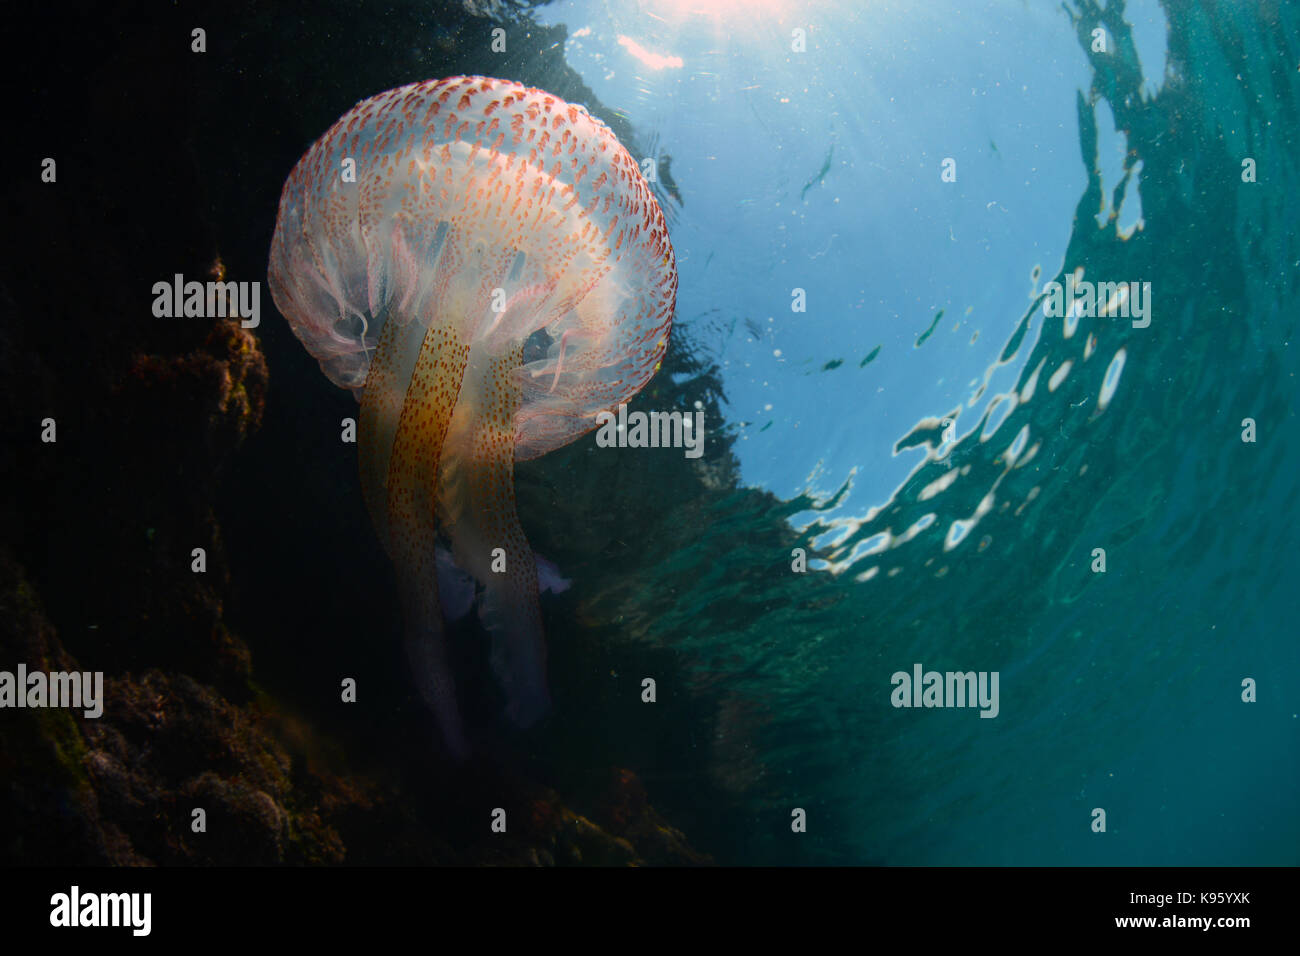 Underwater photo of a mauve stinger jellyfish at Cala Blanca beach , Menorca - Stock Image